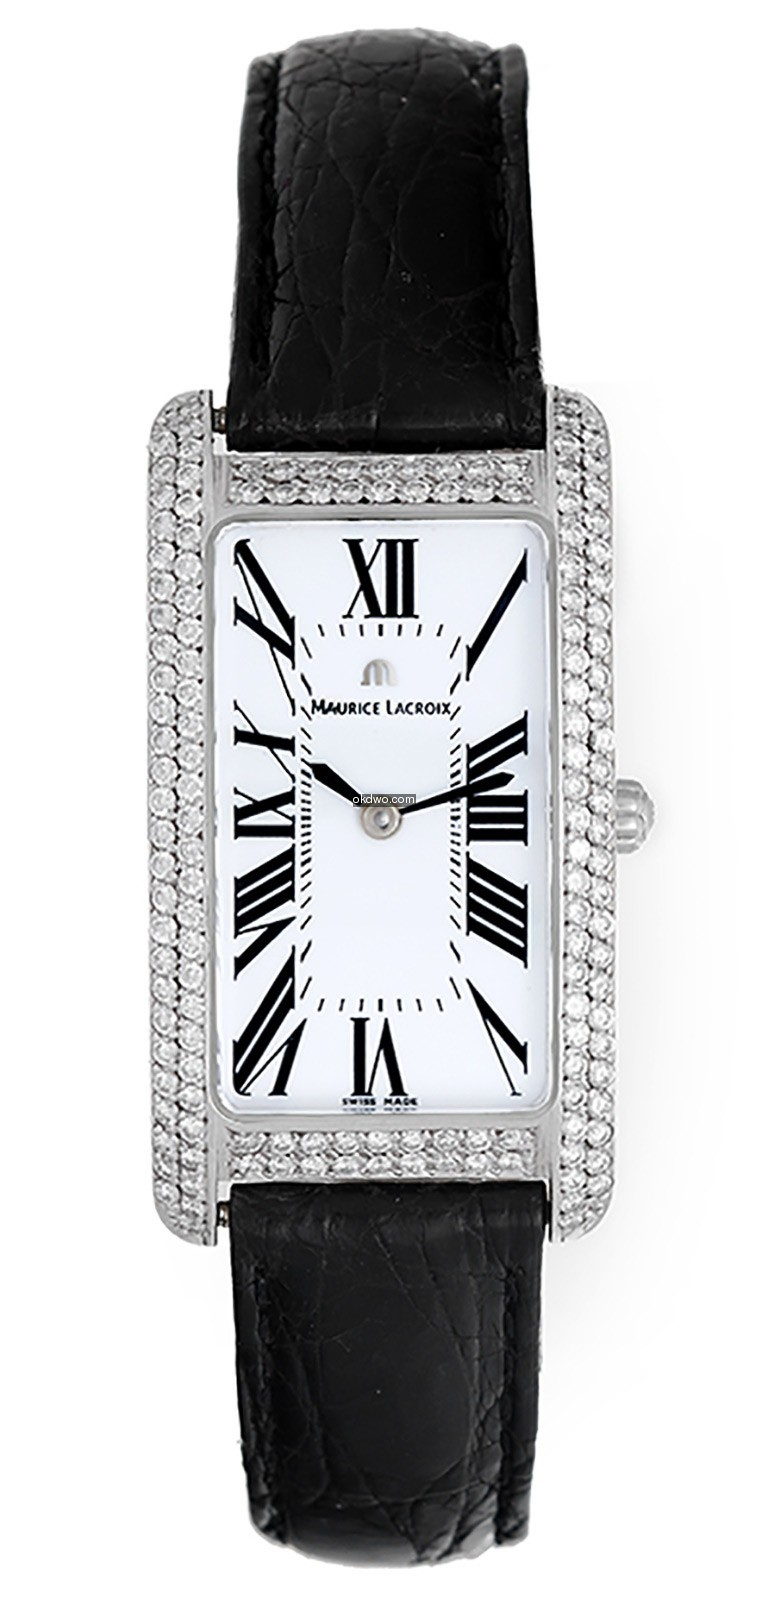 Maurice Lacroix Fiaba 18k White Gold & D...